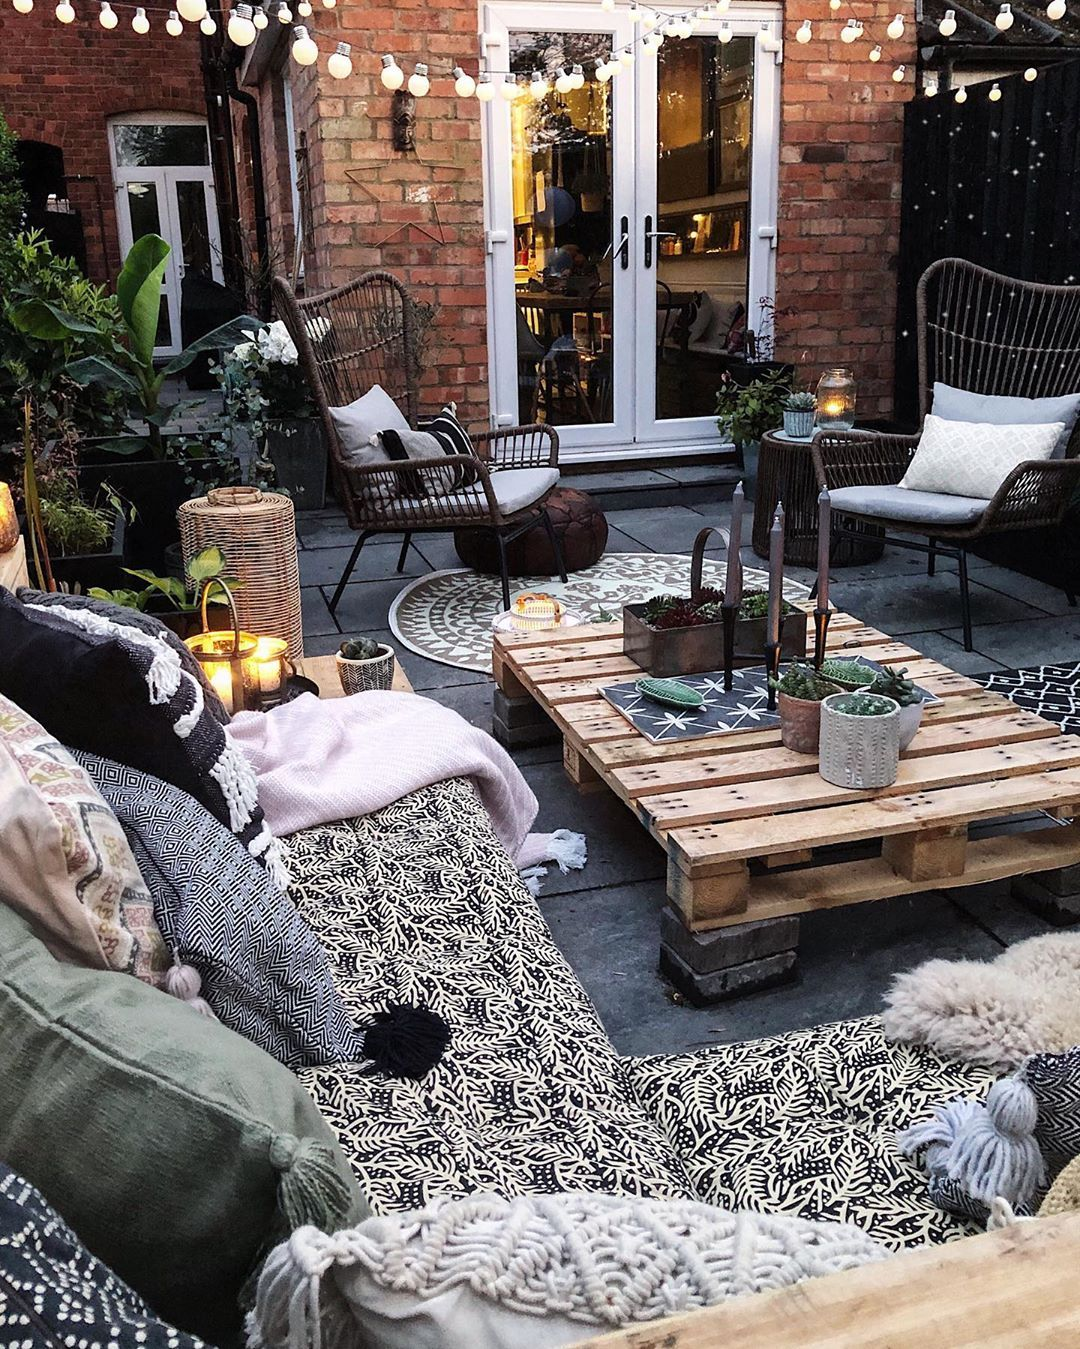 """Photo of Theresa Gromski on Instagram: """"So I've been asked a LOT of questions about my patio revamp and until my blog is up and running (as soon as I get to grips with square…"""""""